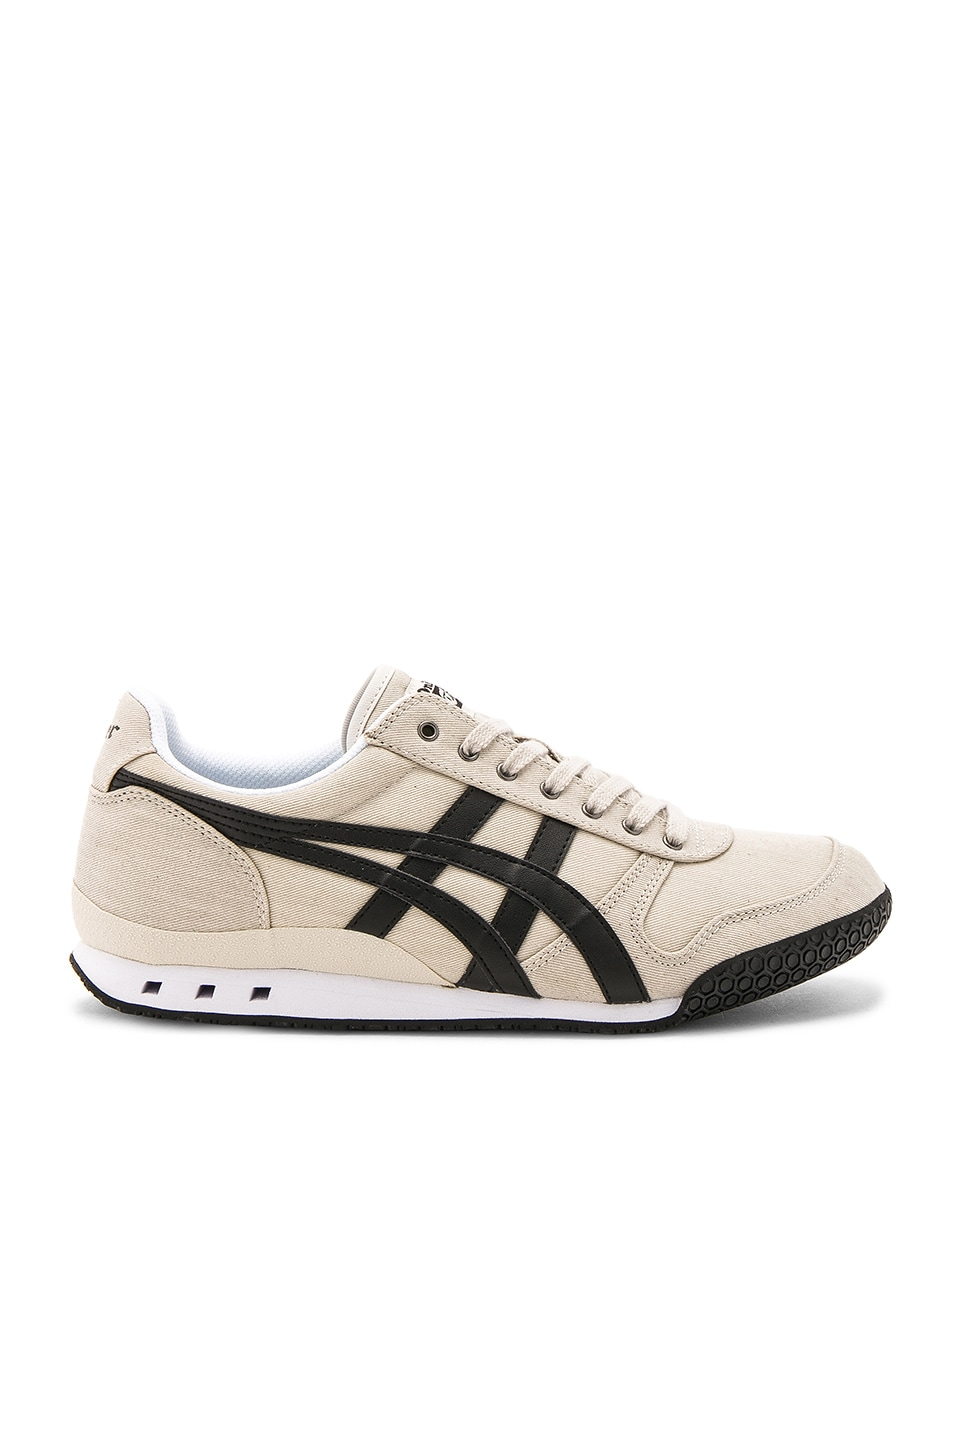 Onitsuka Tiger Ultimate 81 in Latte & Black